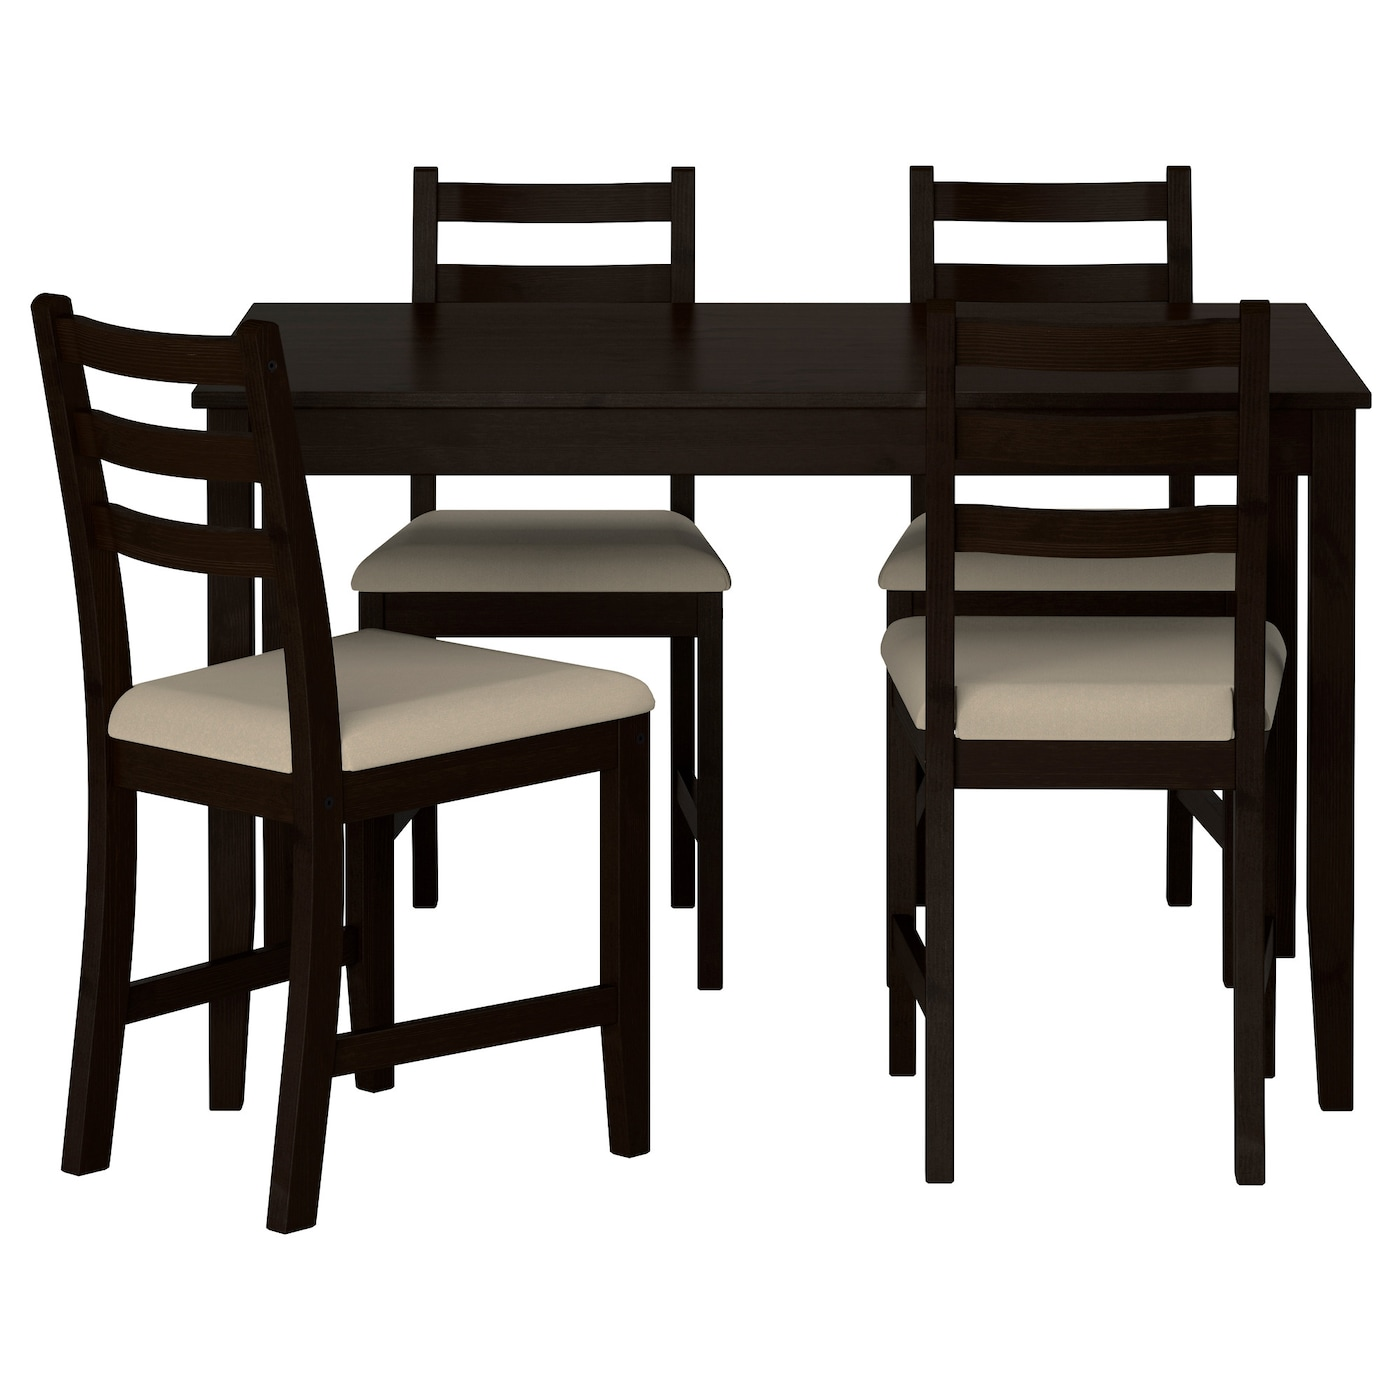 Lerhamn table and 4 chairs black brown ramna beige 118x74 for Kitchen table with 4 chairs